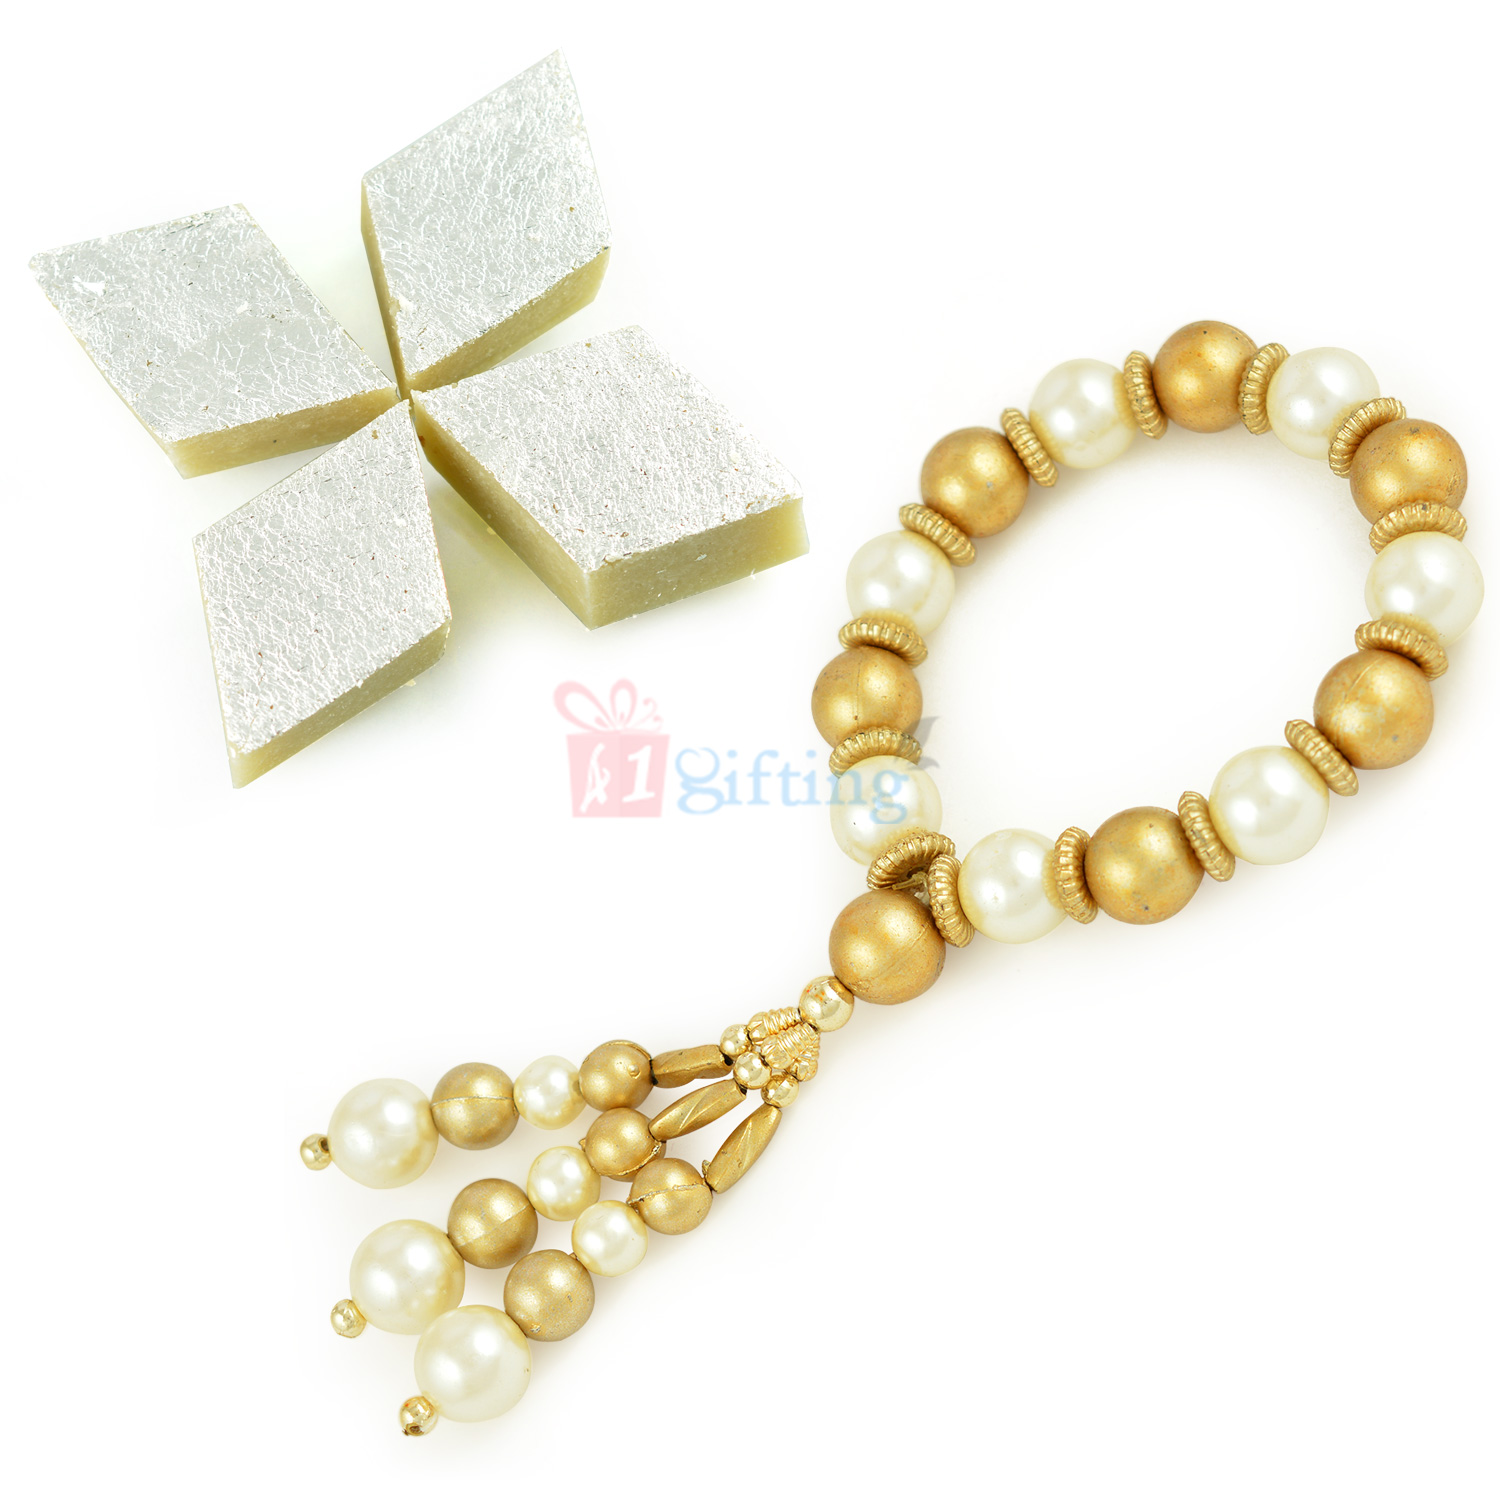 Amazing Pearl and Golden Beads Ladies Bracelet with Sweet Hamper